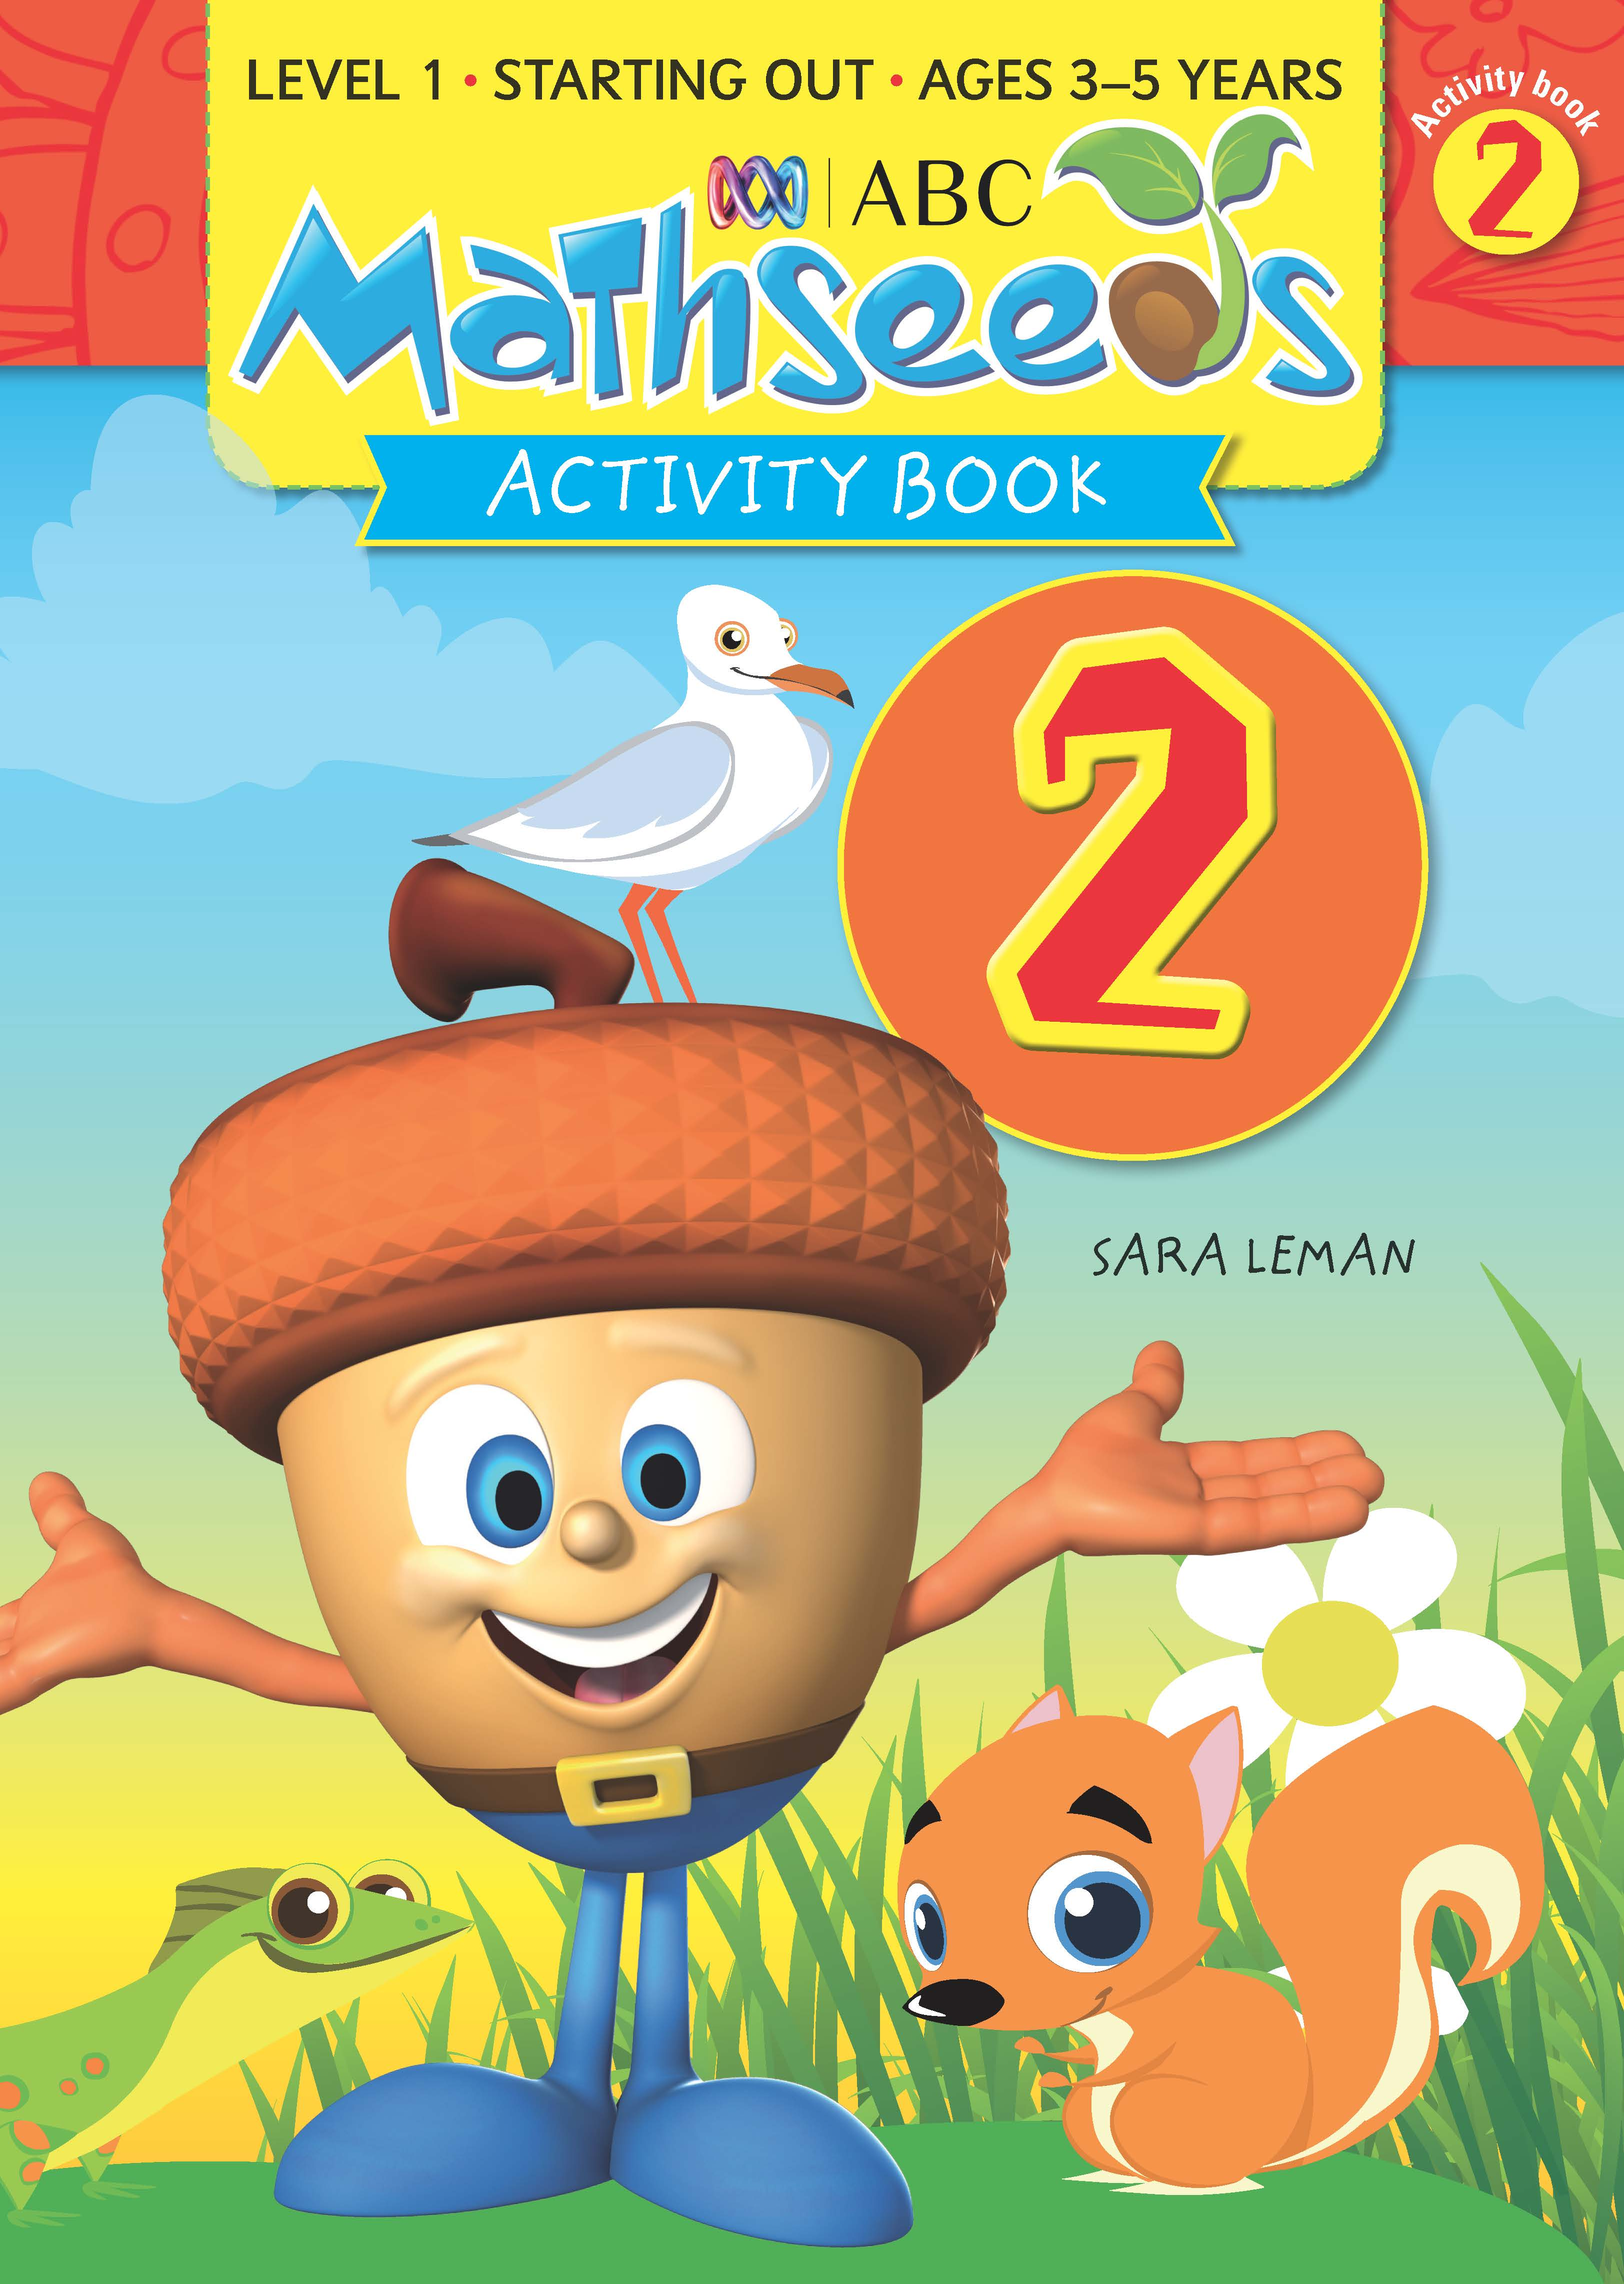 ABC Mathseeds Activity Book 2 Level 1 Ages 3-5